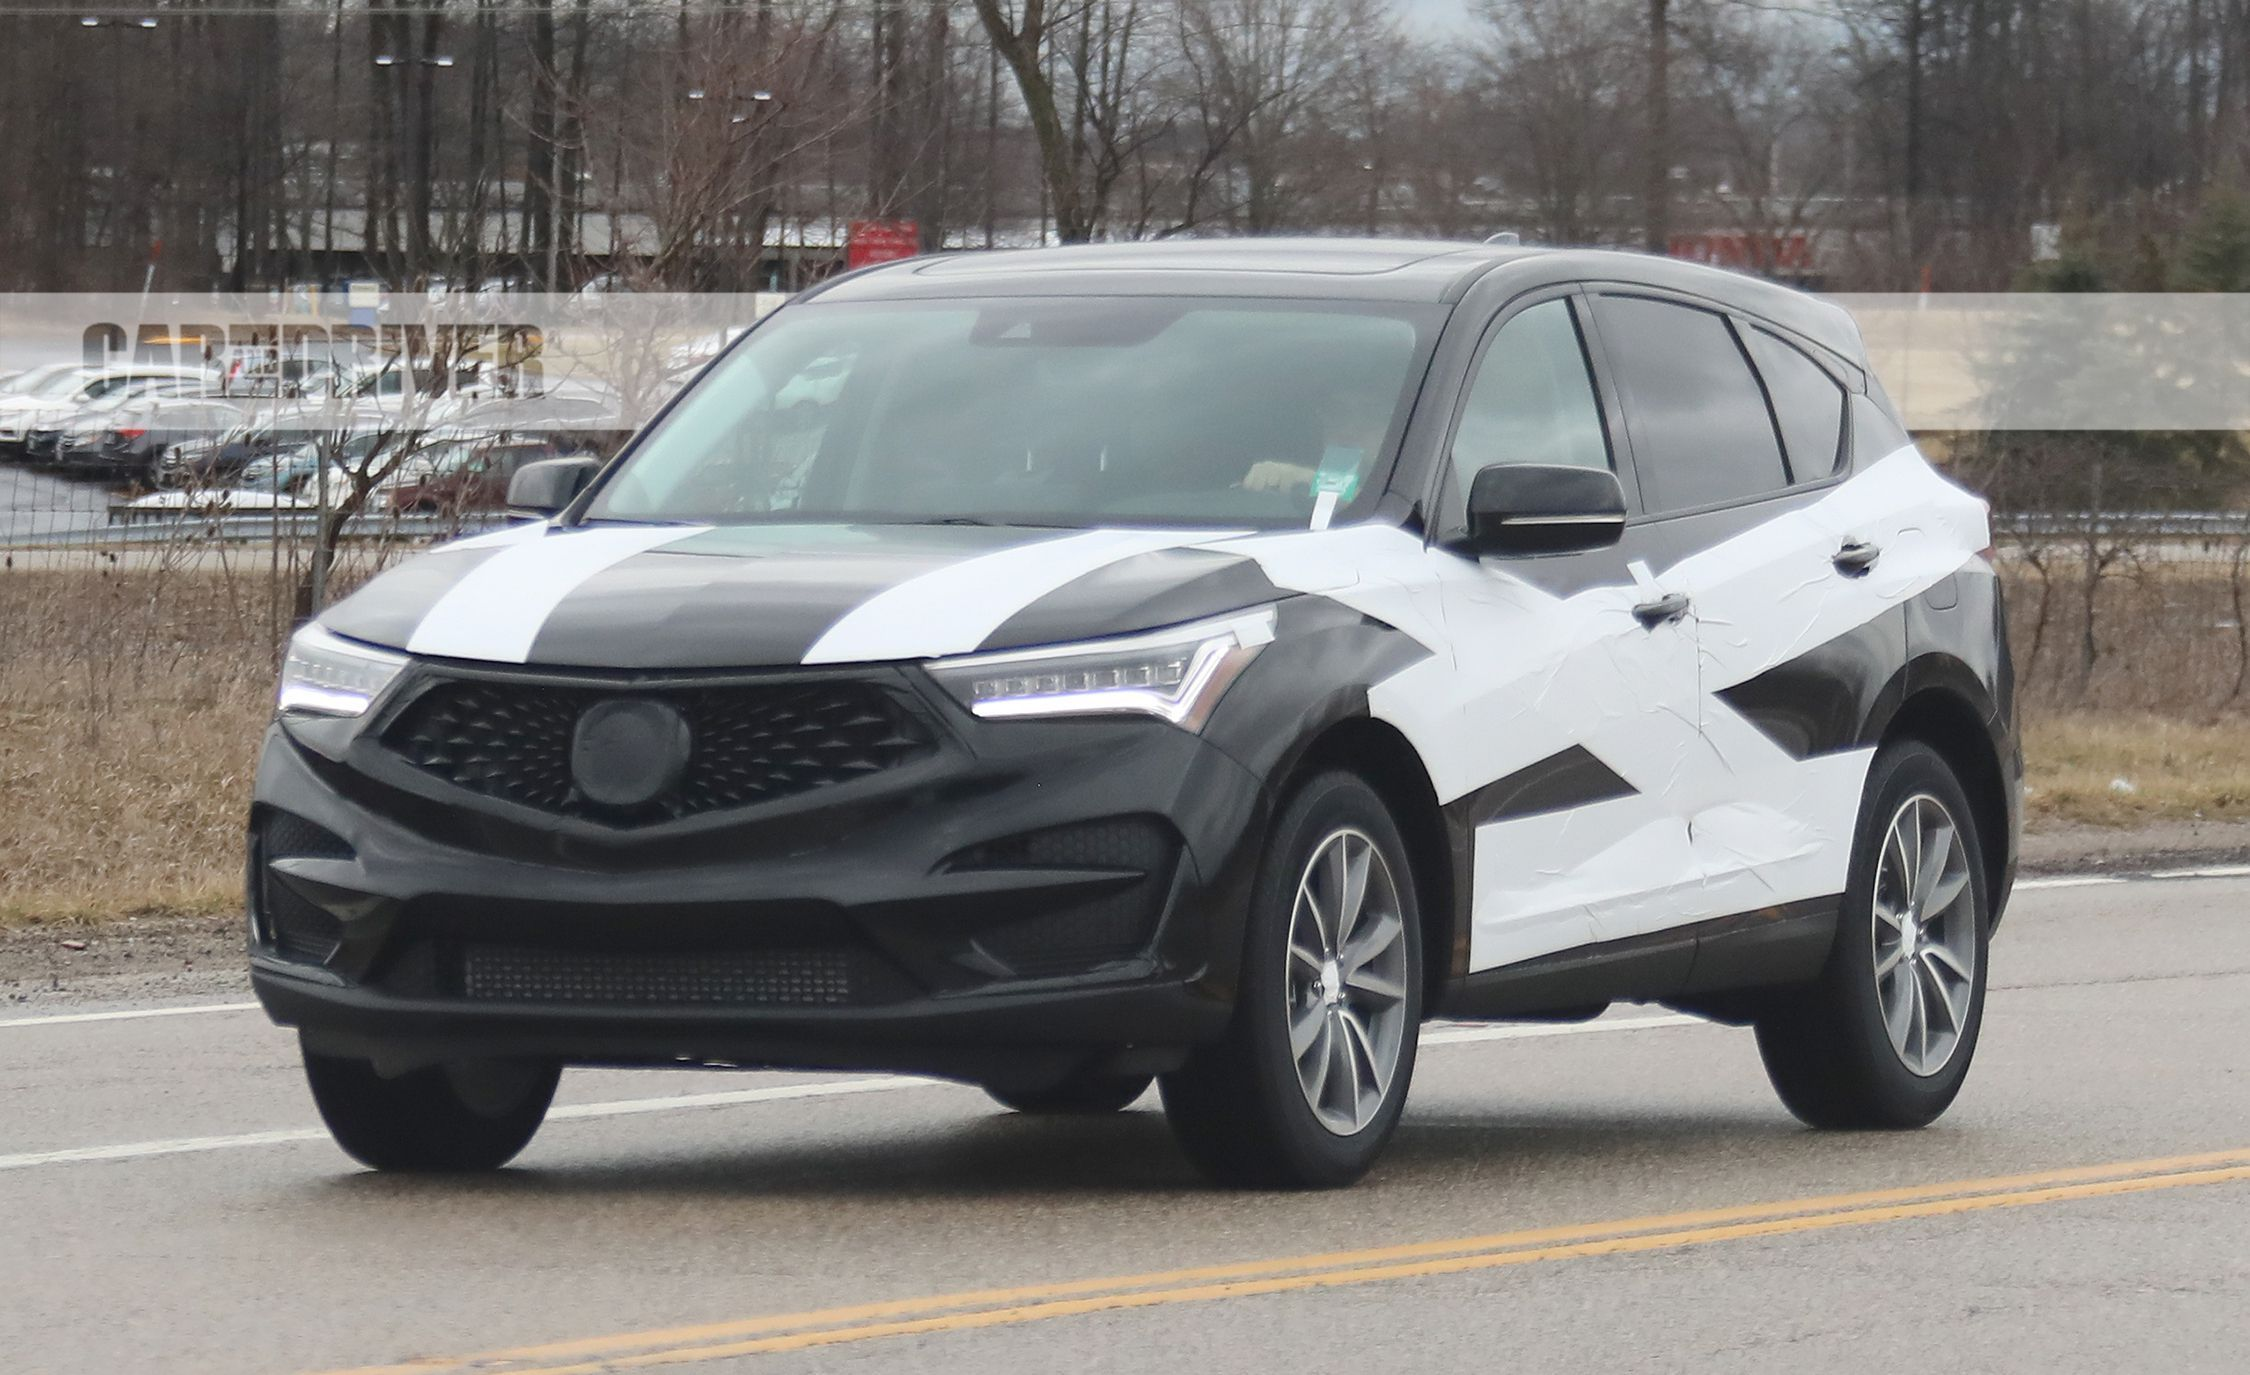 2019 Acura RDX Spied Out and About in Skimpy Camo – Future Cars ...